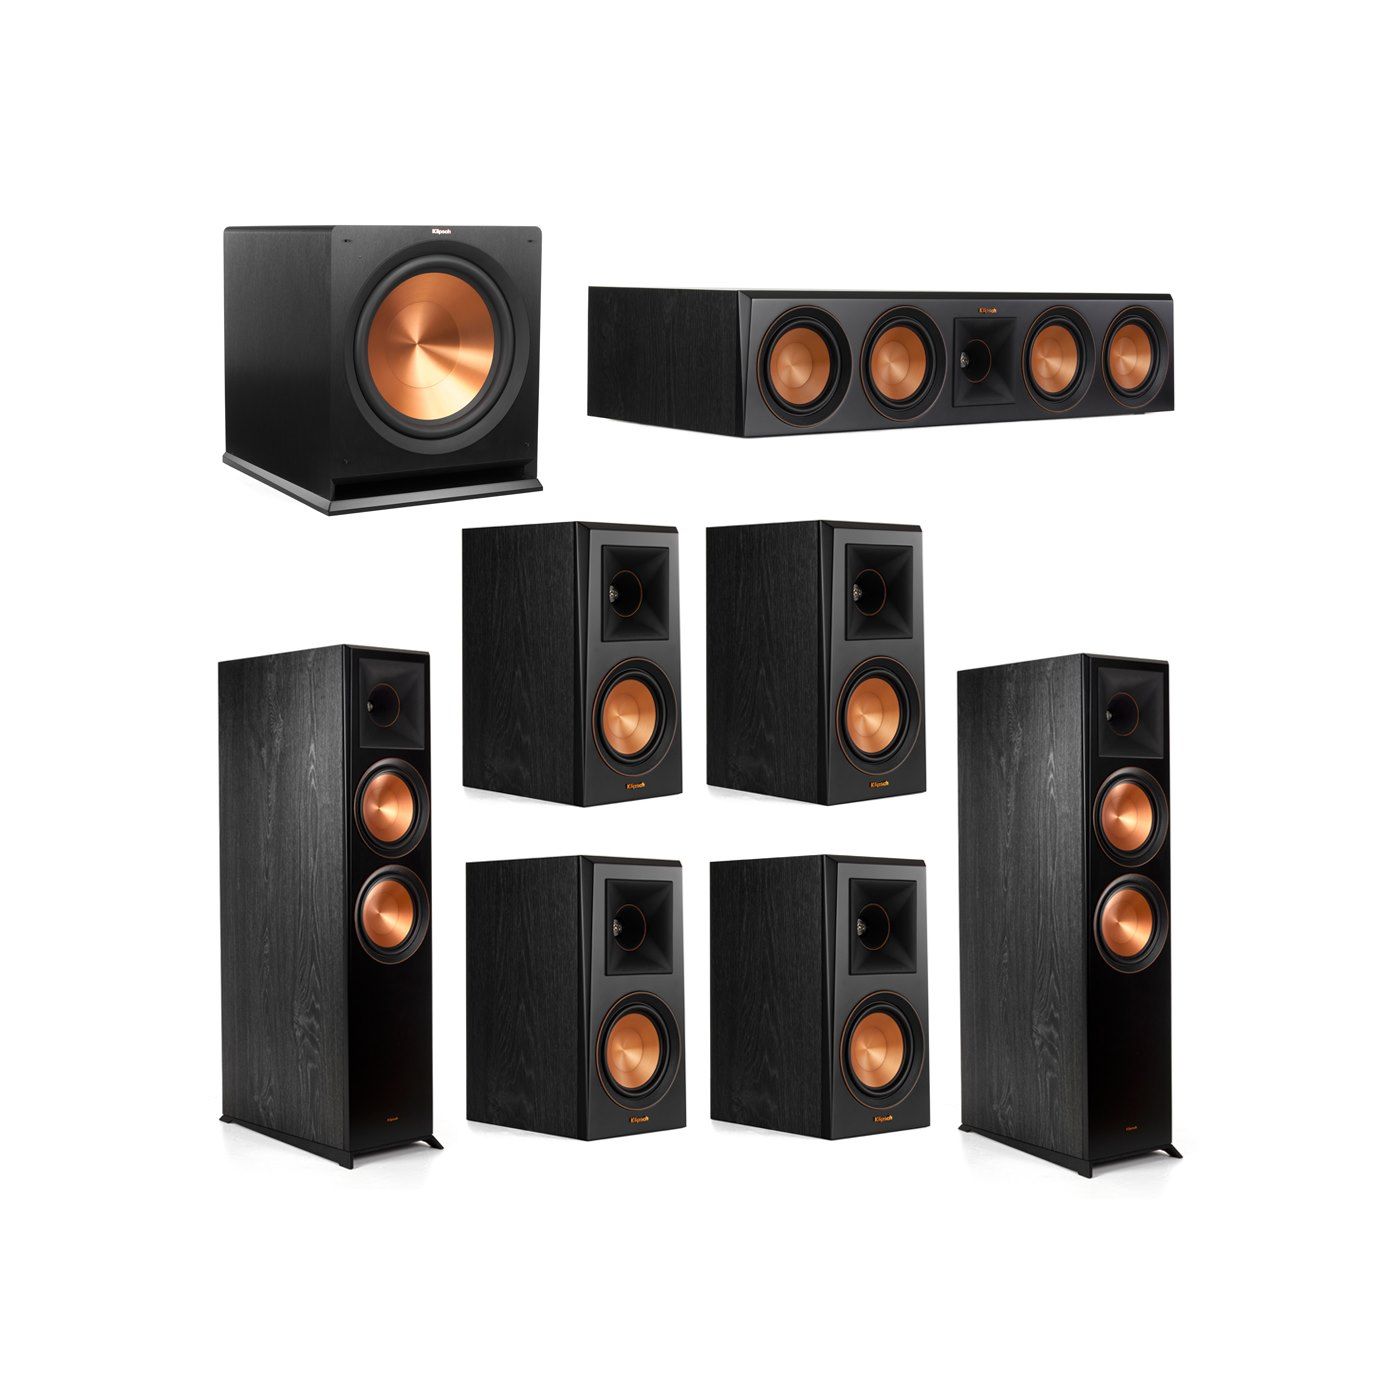 Klipsch 7.1.2 System - 2 RP-8060FA Dolby Atmos Speakers, 1 RP-504C, 4 RP-500M Speakers, 1 R-115SW